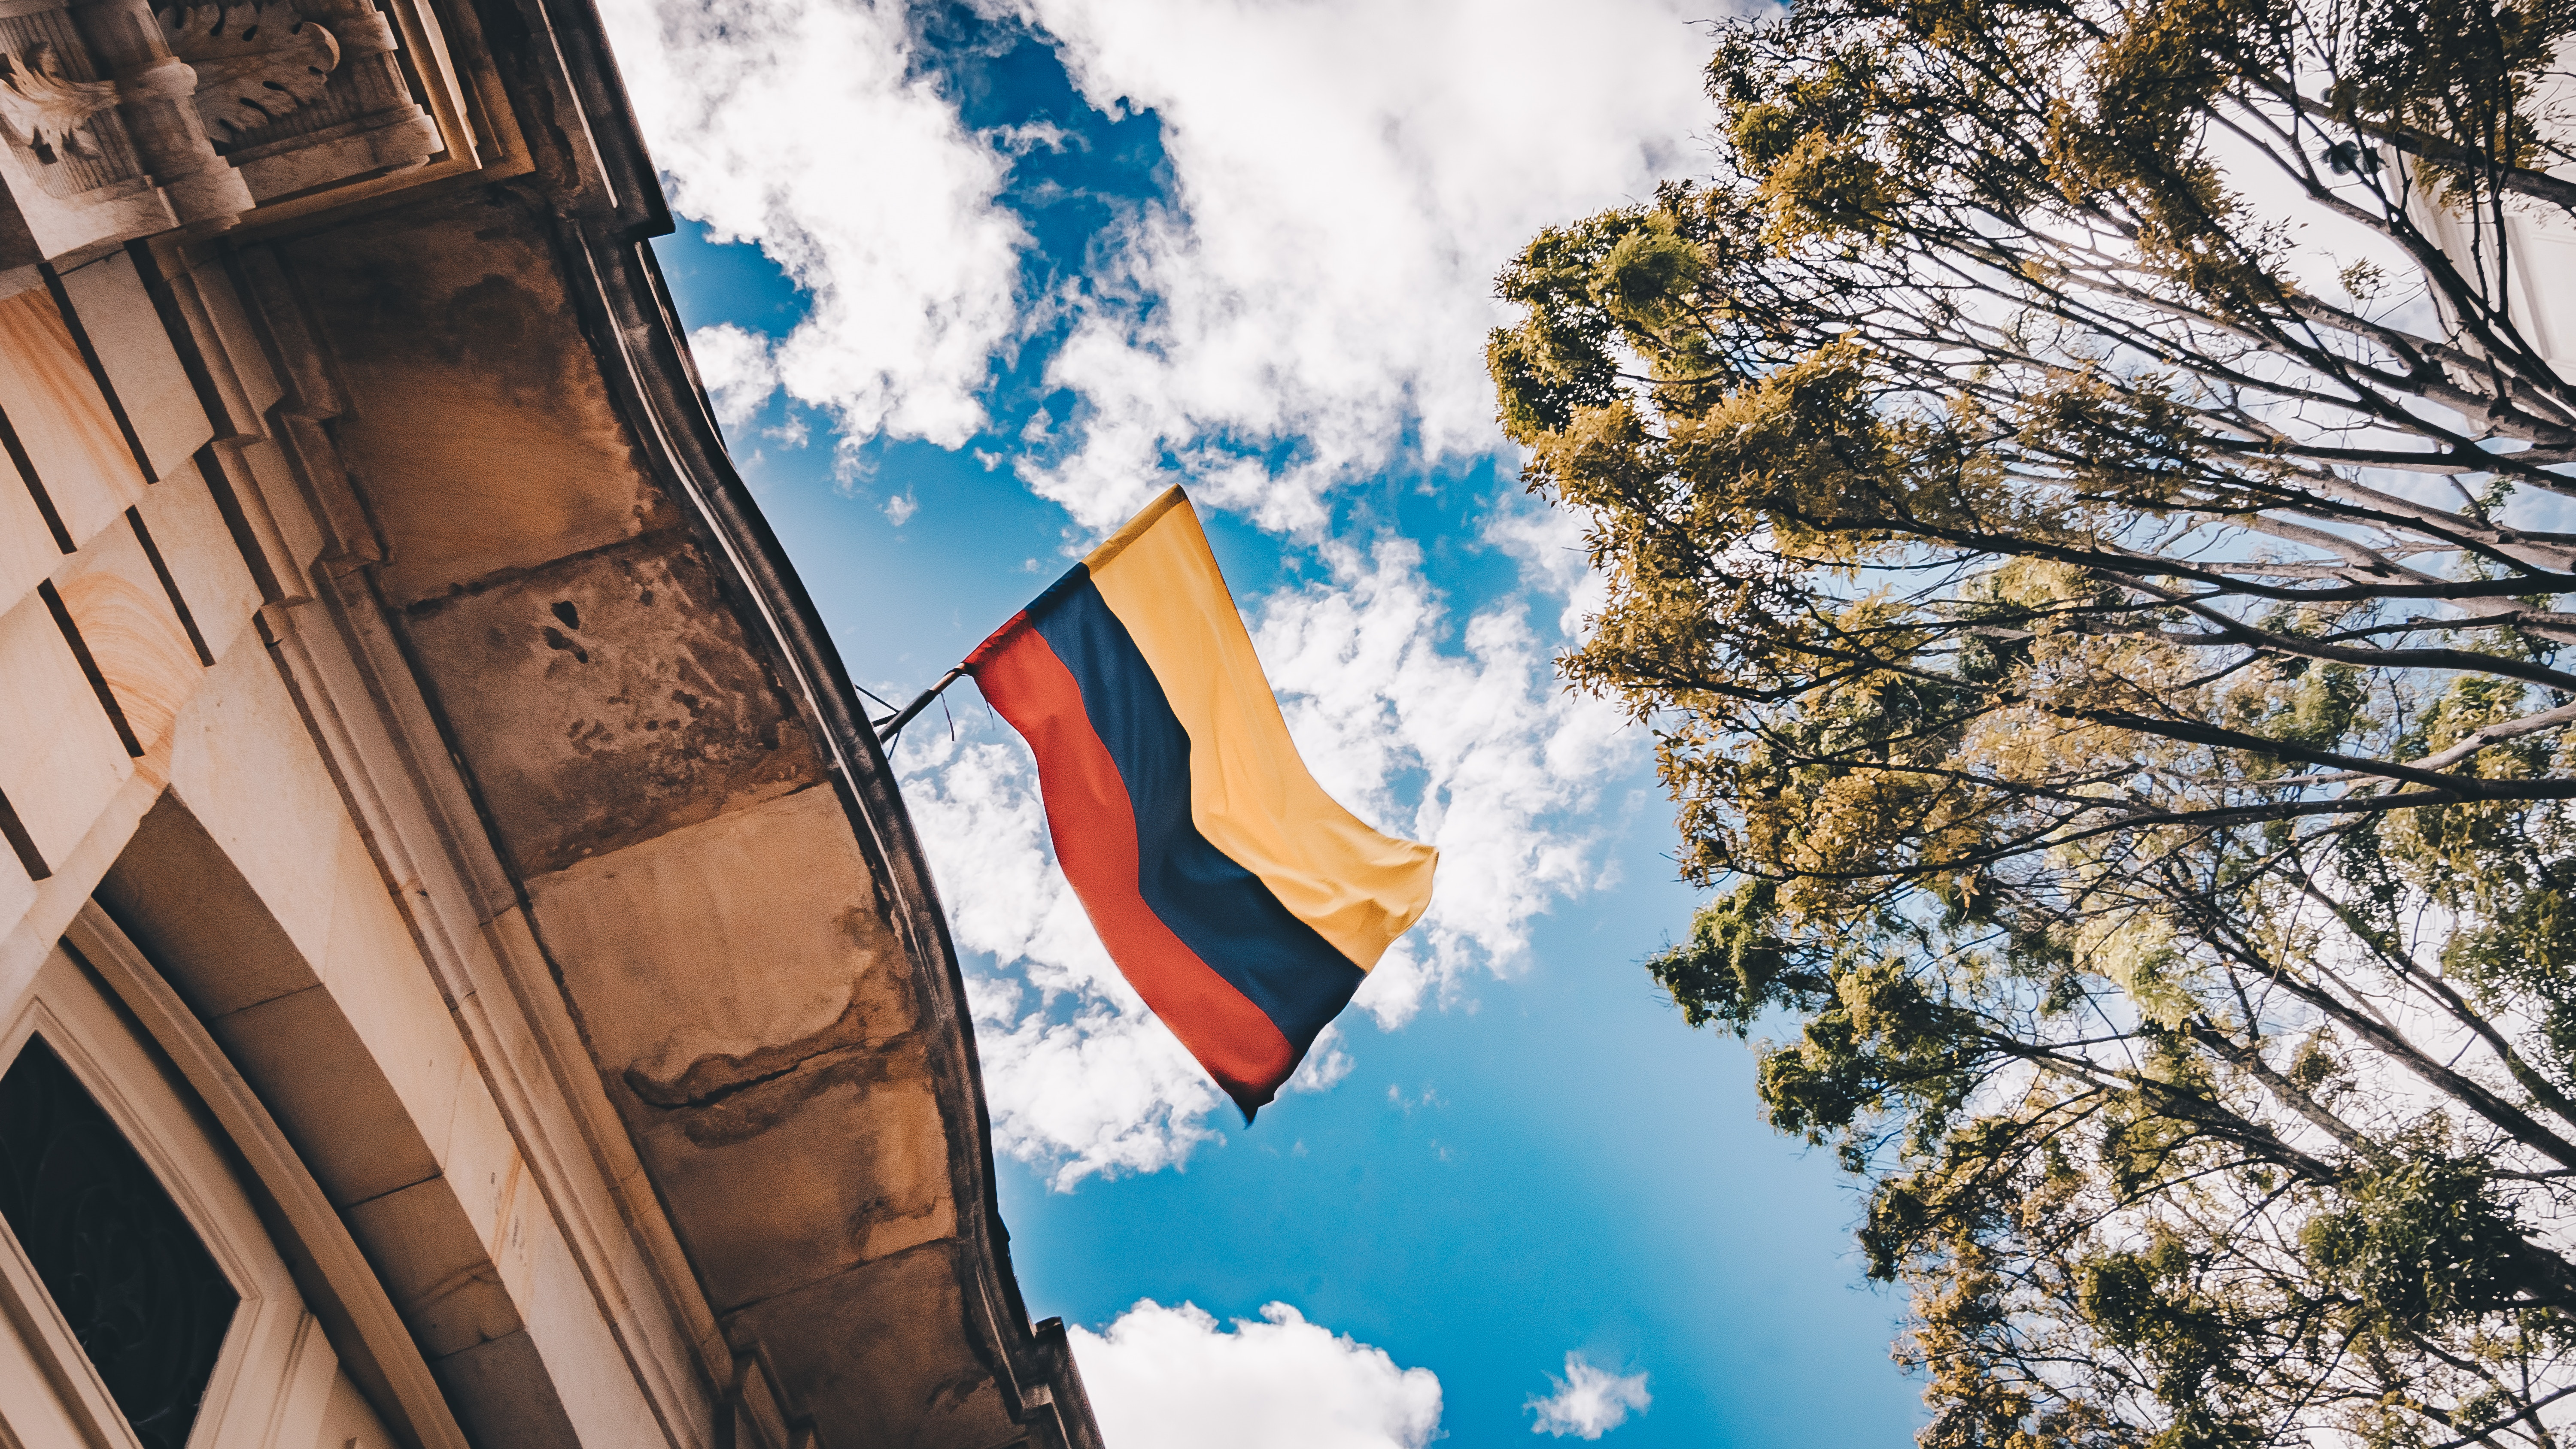 The Best Spot for Digital Nomads in Colombia